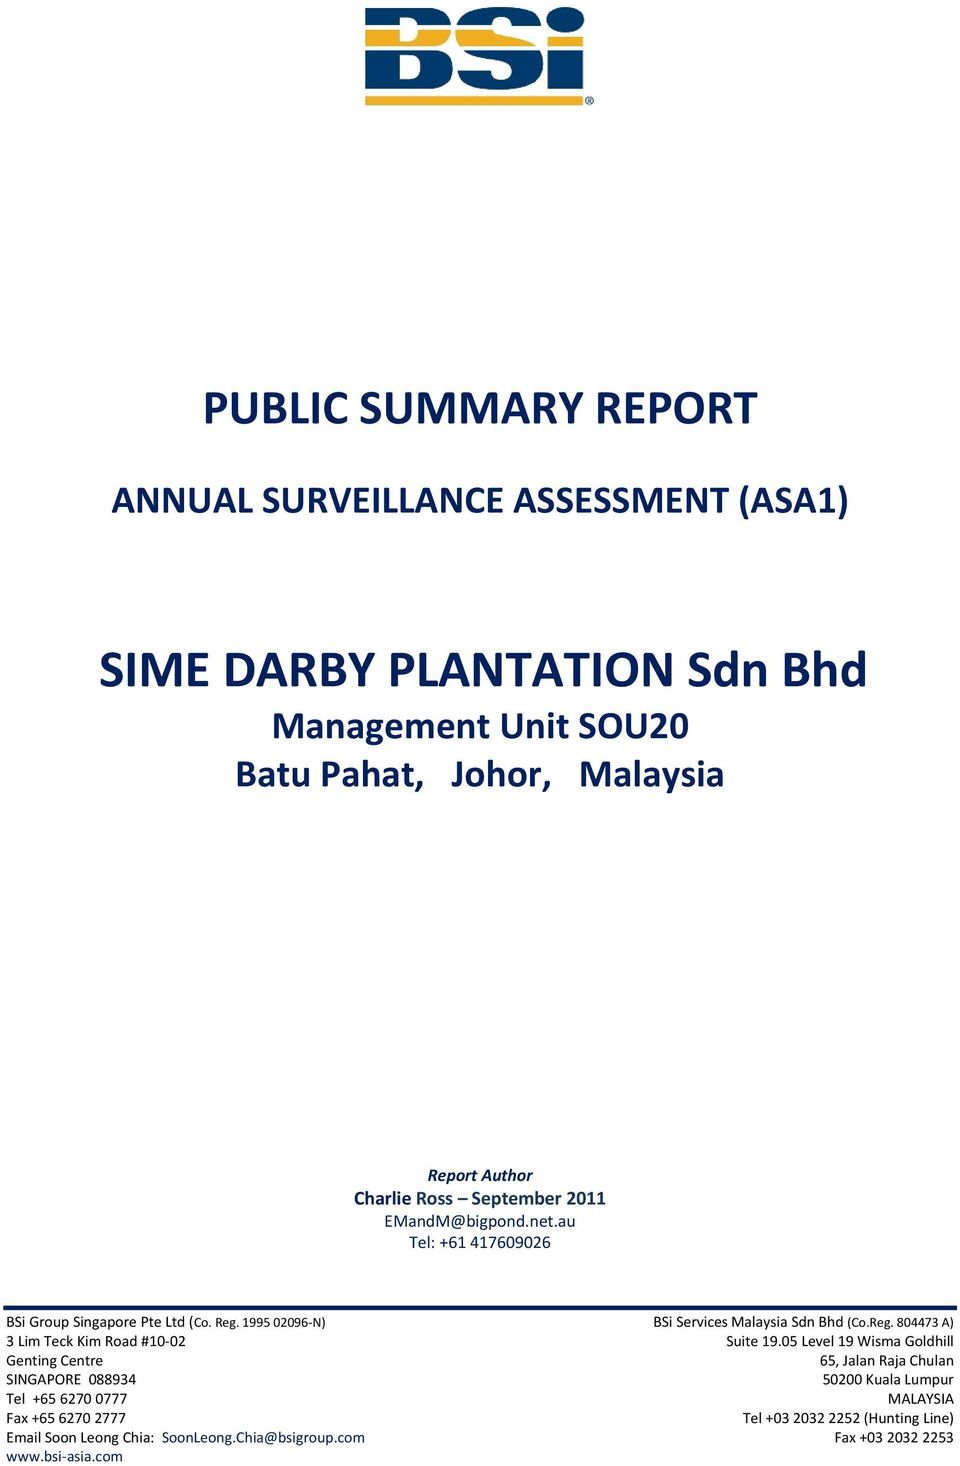 sime darby risk management He joined sime darby in 2008 as head of value management and investor relations  prior to joining sime darby, he was head of financial market surveillance,.